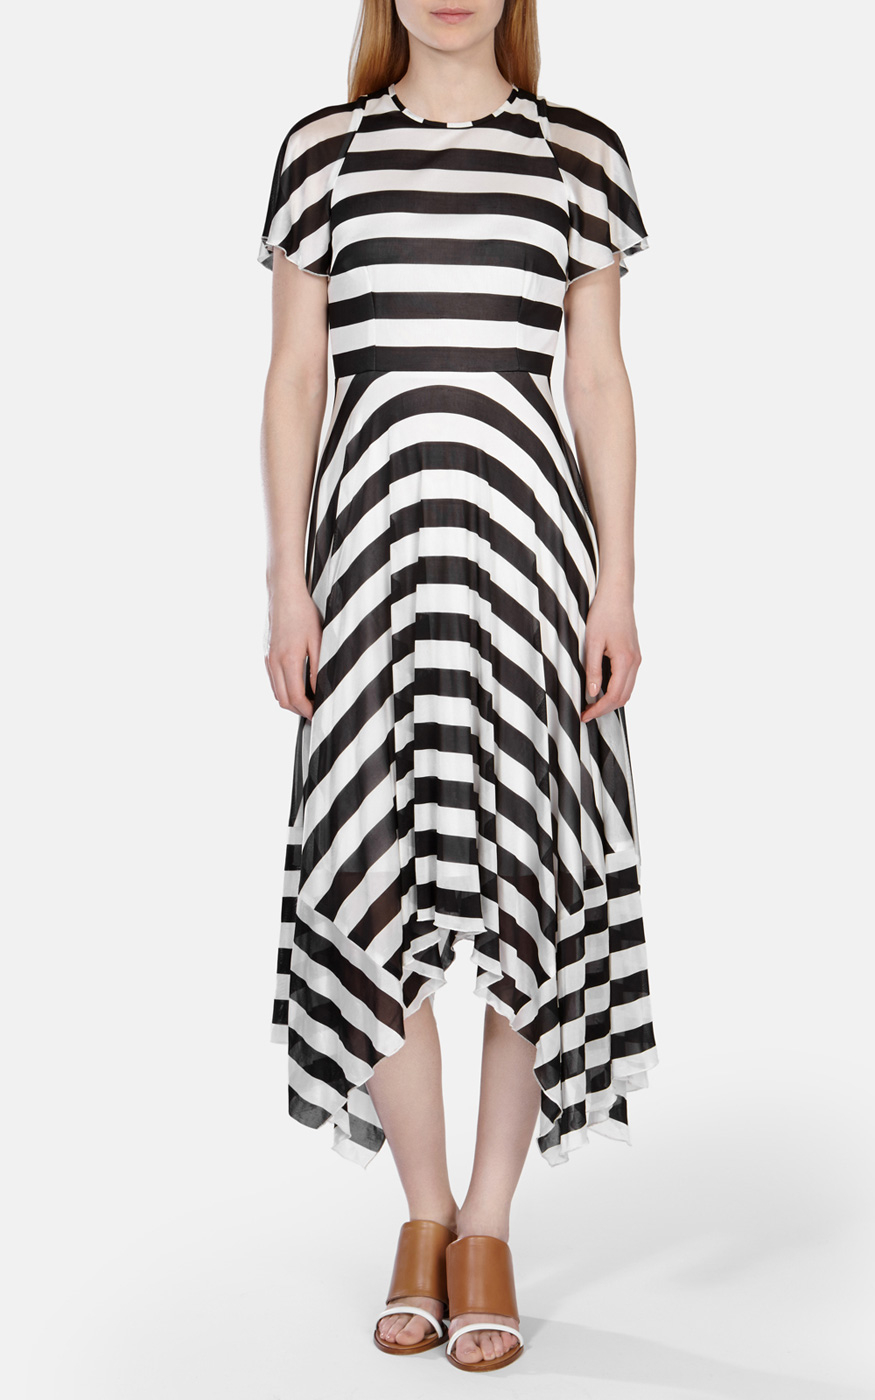 c02dcb5edb4 Karen Millen Draped Bold Stripe Jersey Dress in Black - Lyst